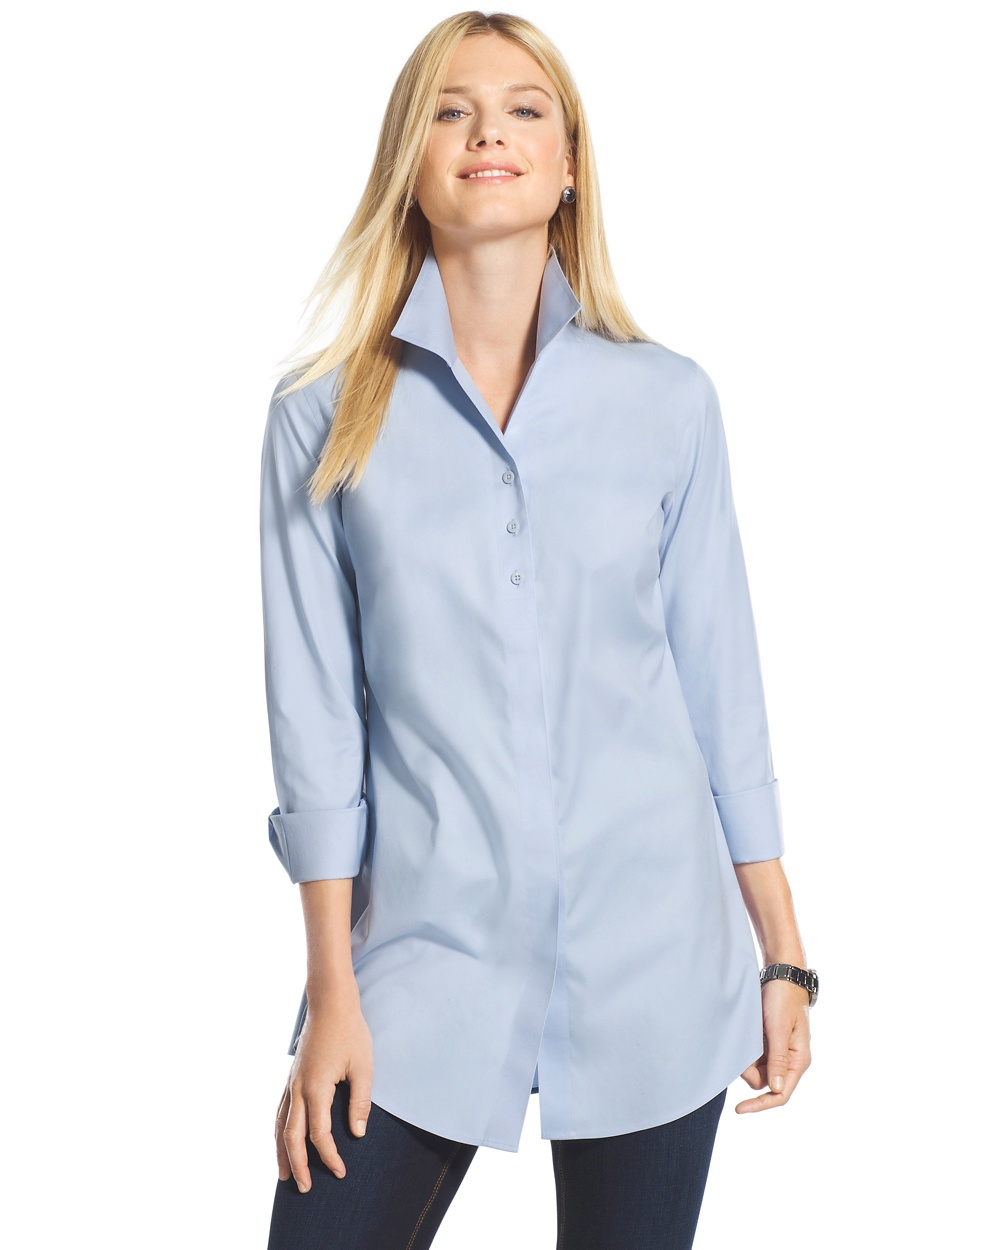 Effortless (No Iron!) Cotton Soleil Shirt. Available in multiple colors. Chico's. $89.